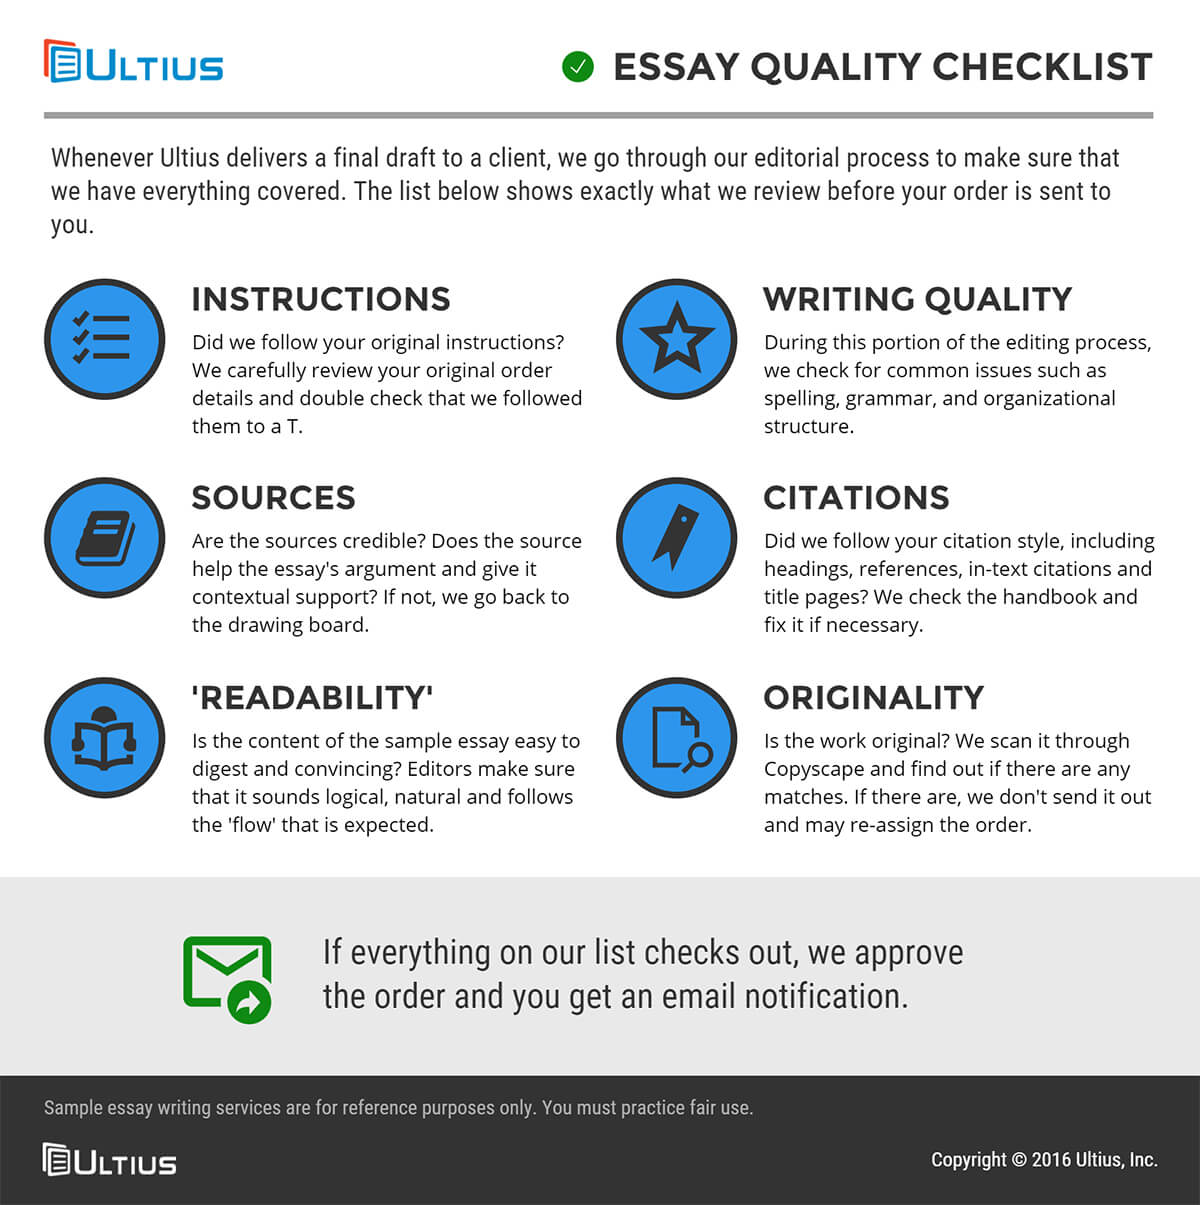 020 Essay Example Quality Checklist Buy Singular Review Just Reviews Friend Full